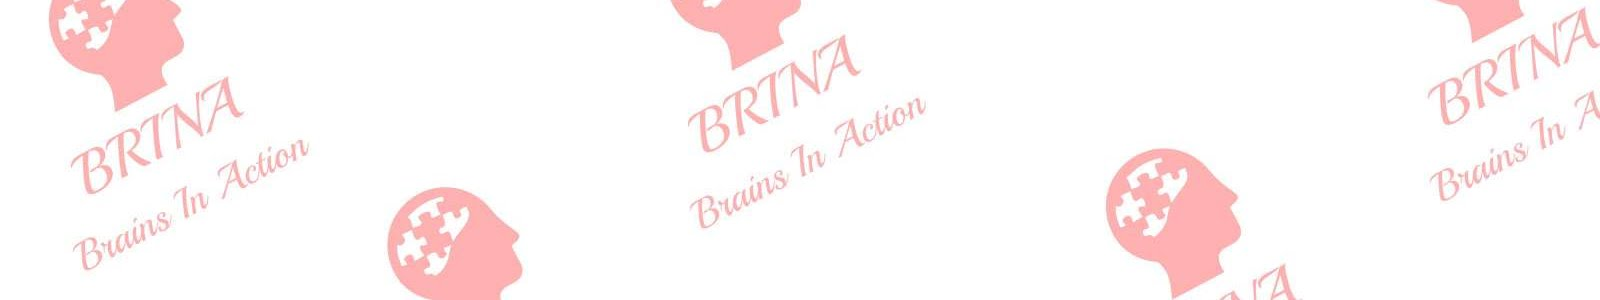 Cognitive Therapy & Help | London | Brina | Neuropsychologists